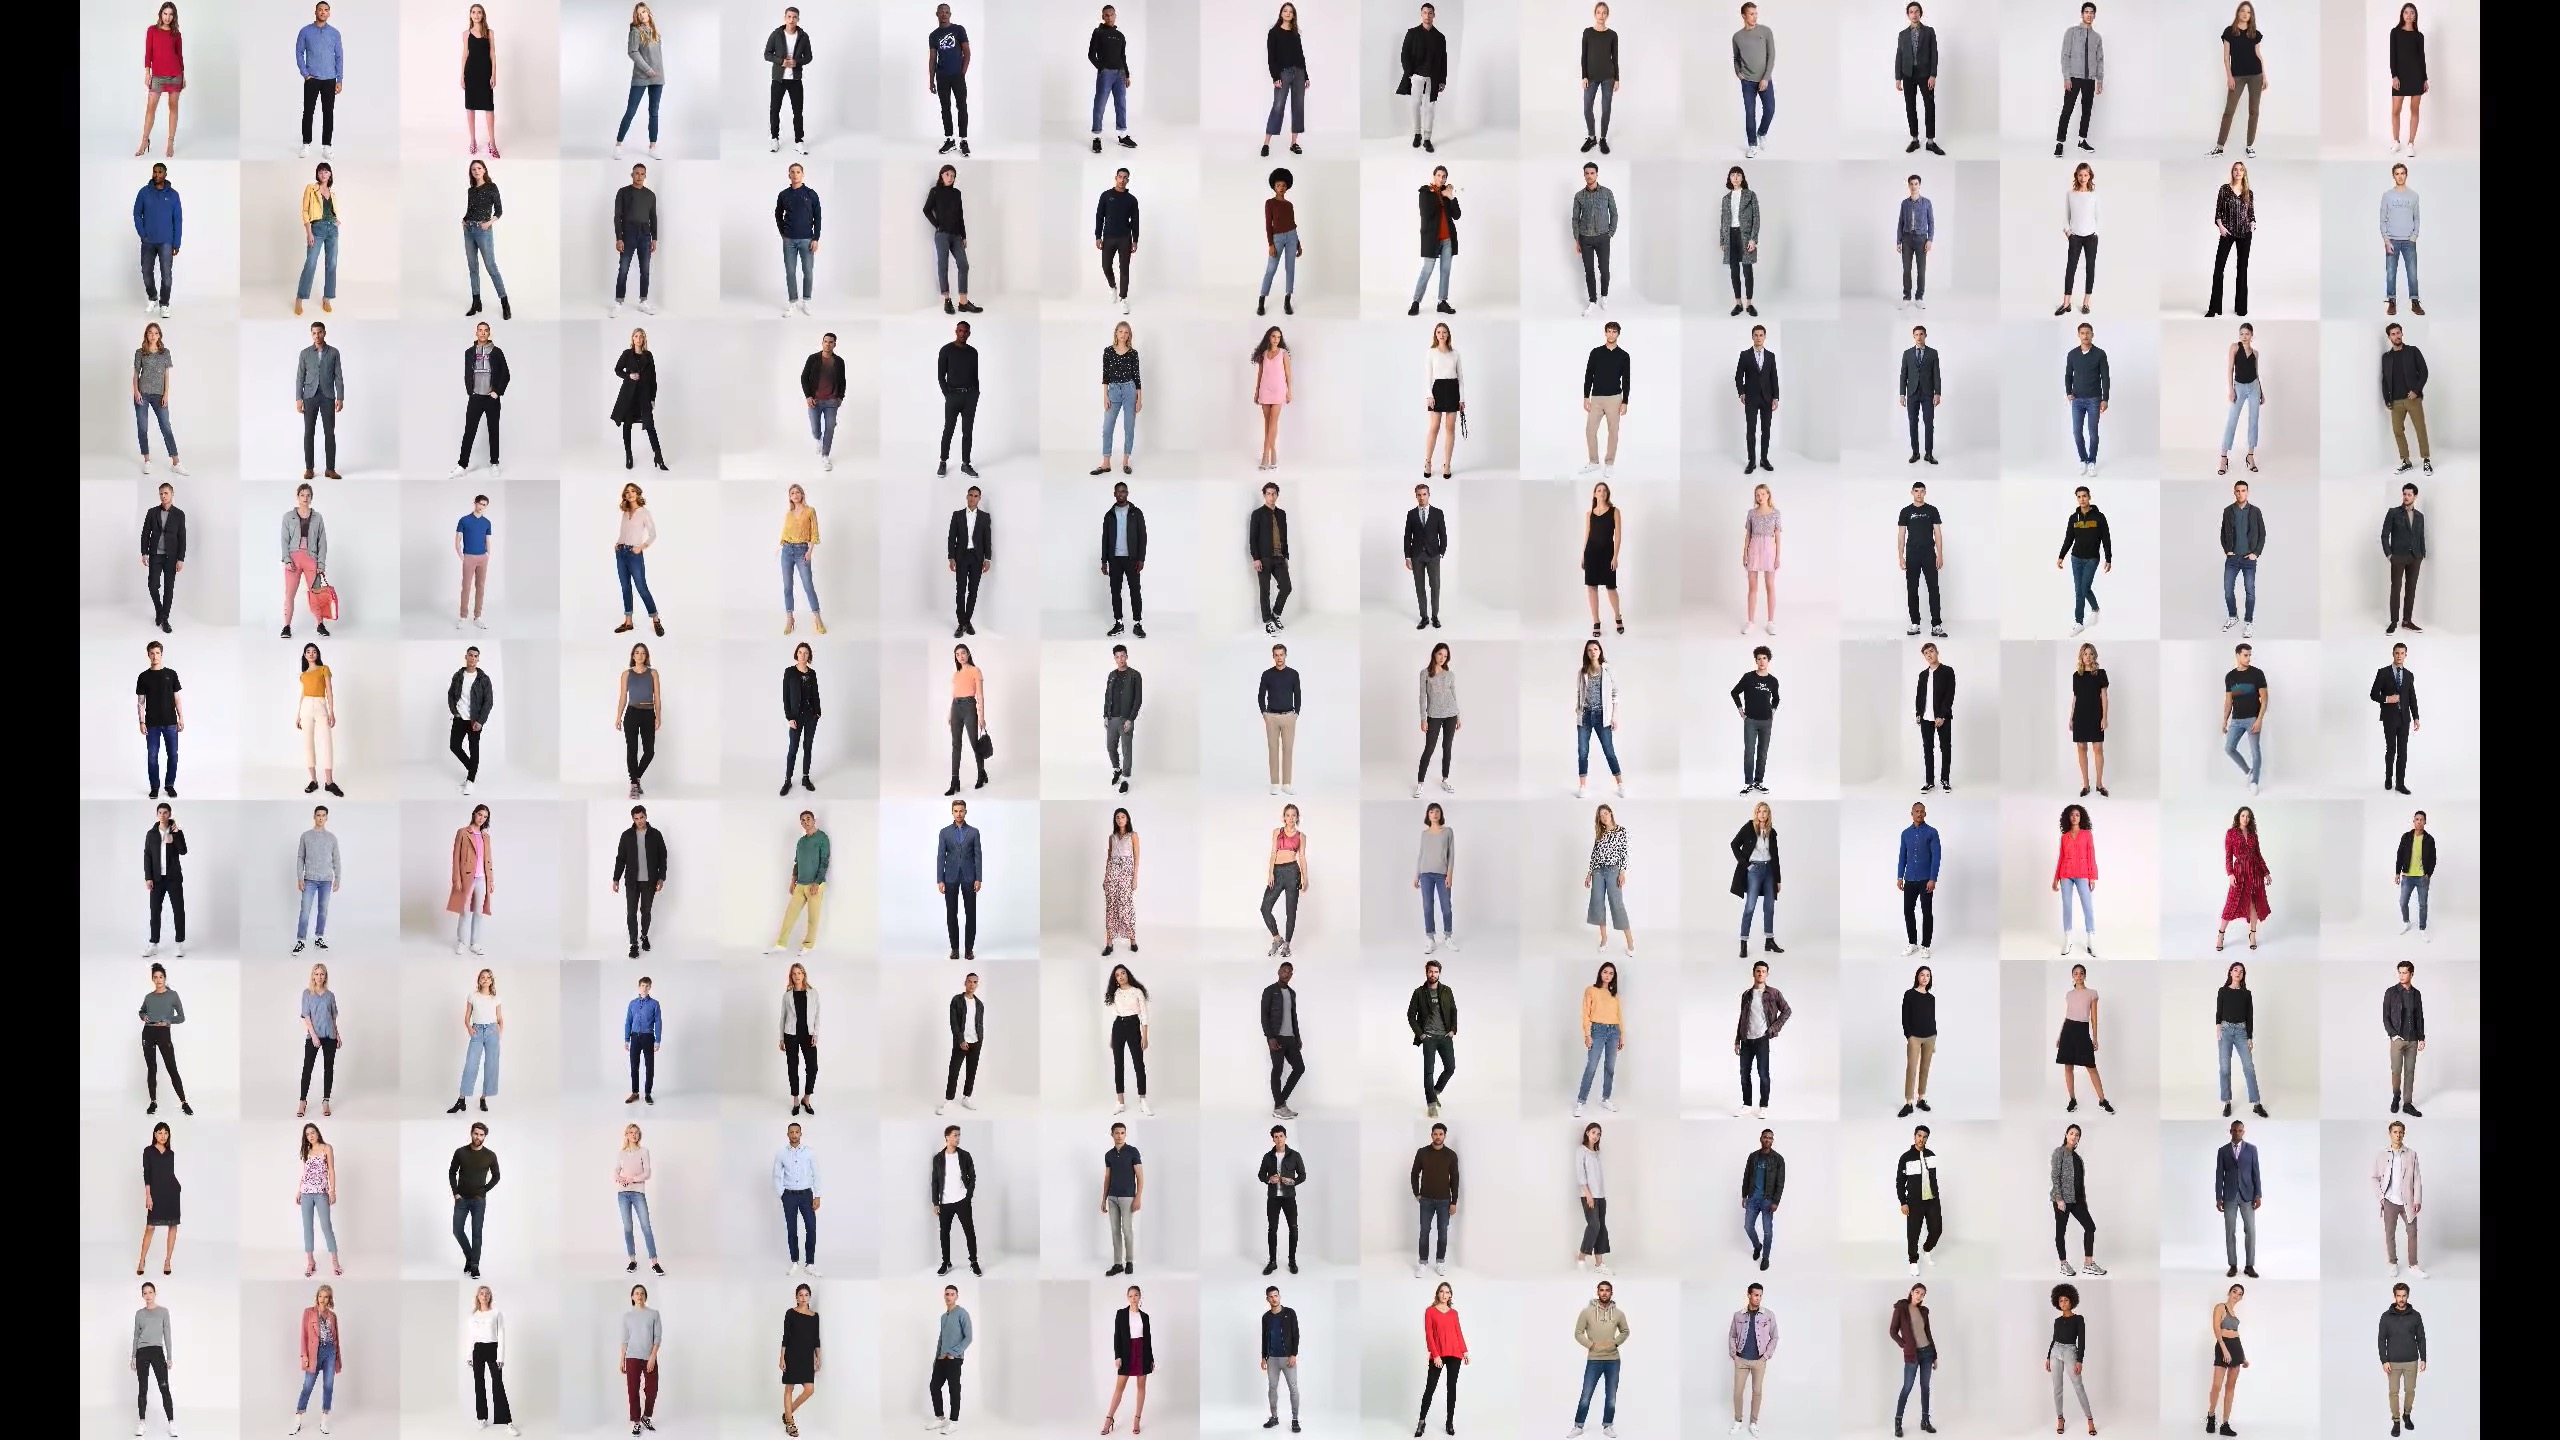 Company uses AI to generate whole-body images of people who don't